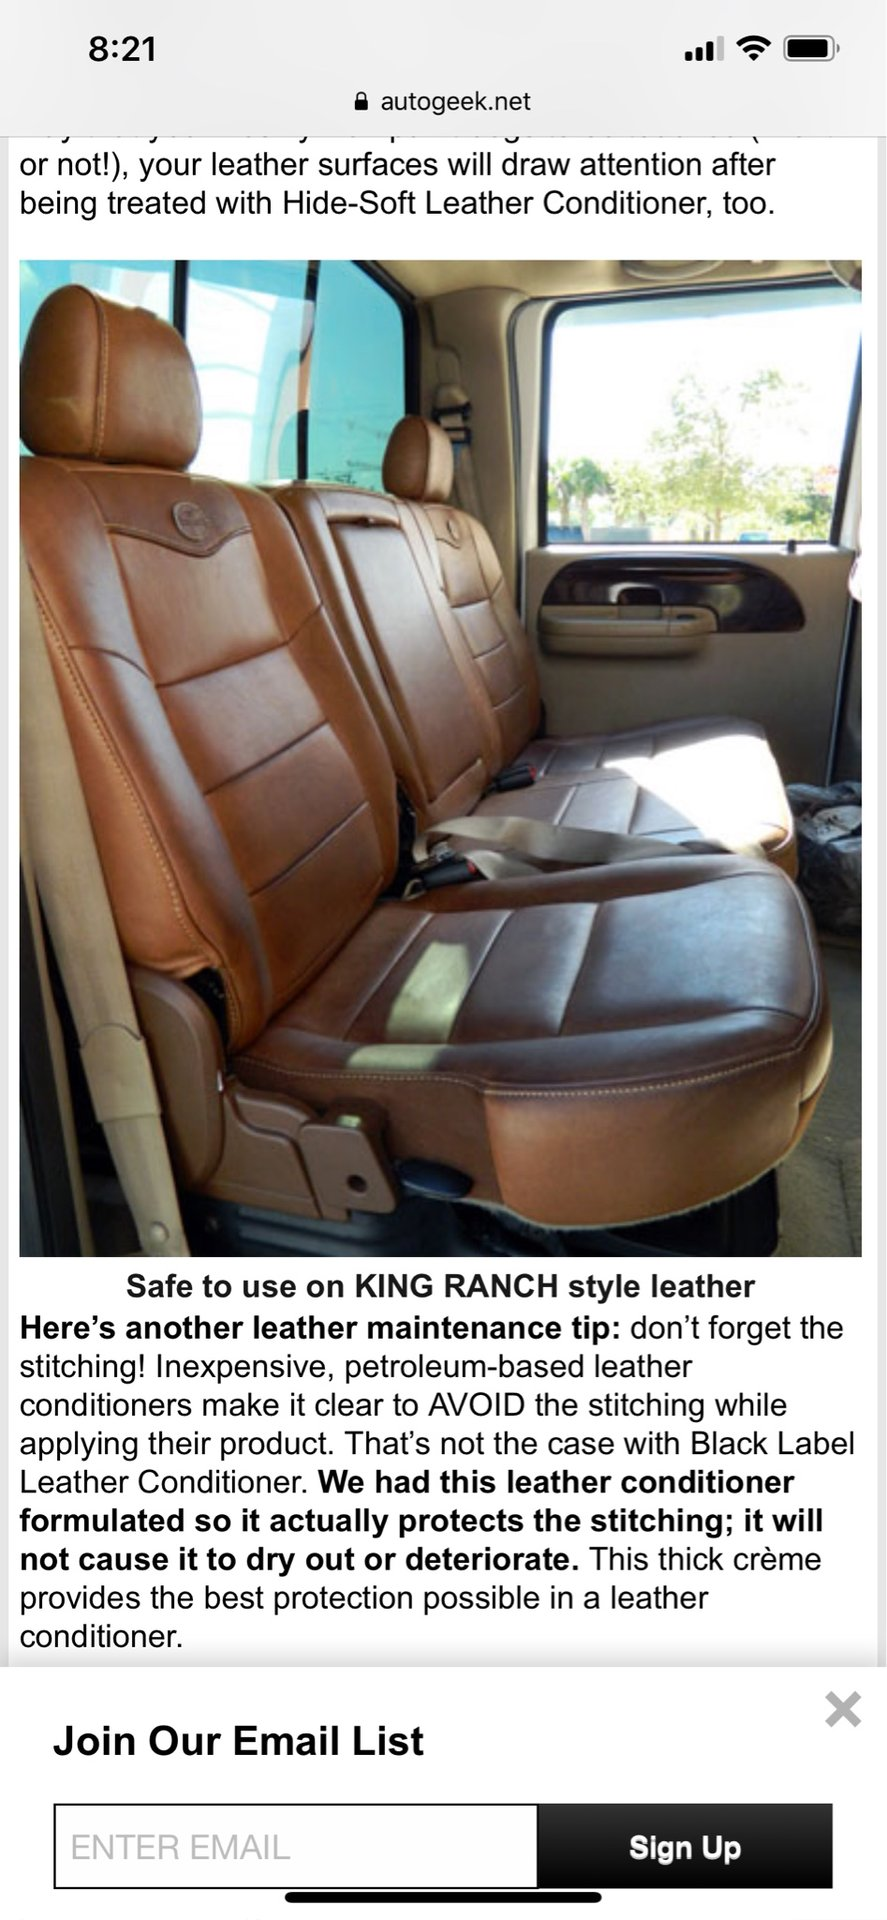 Planning on cleaning my 2013 king ranch leather seats